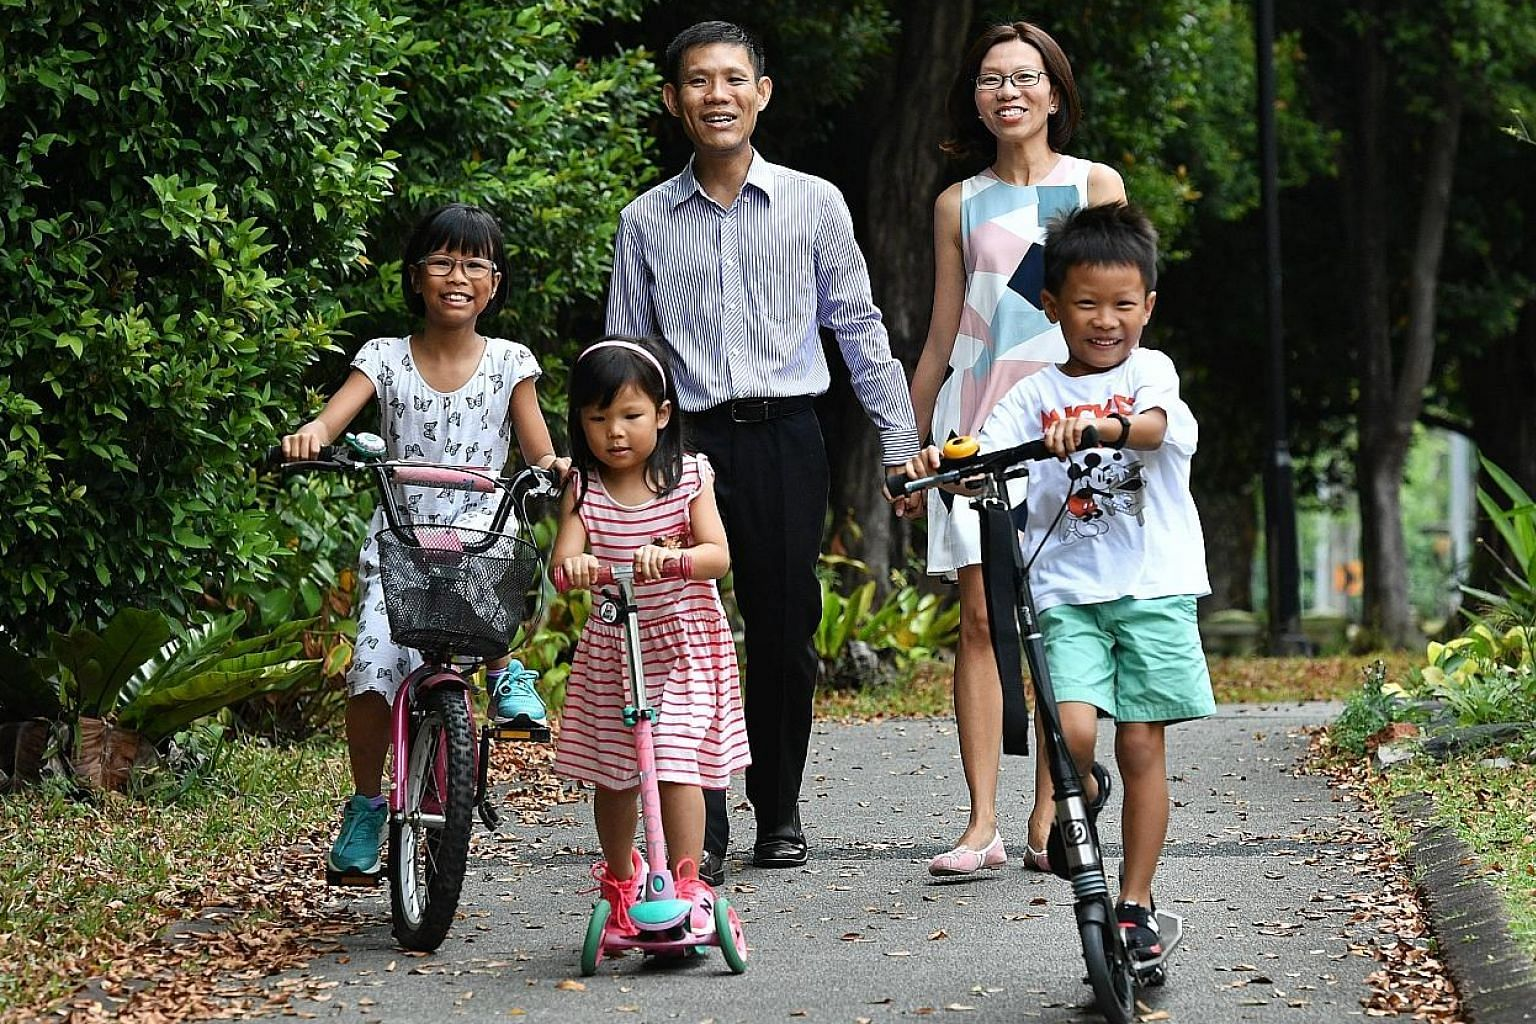 Financial services executive Derek Liang with his wife, Ms Lynne Tan, and their three children, Sarah (far left), Hannah and Joseph.